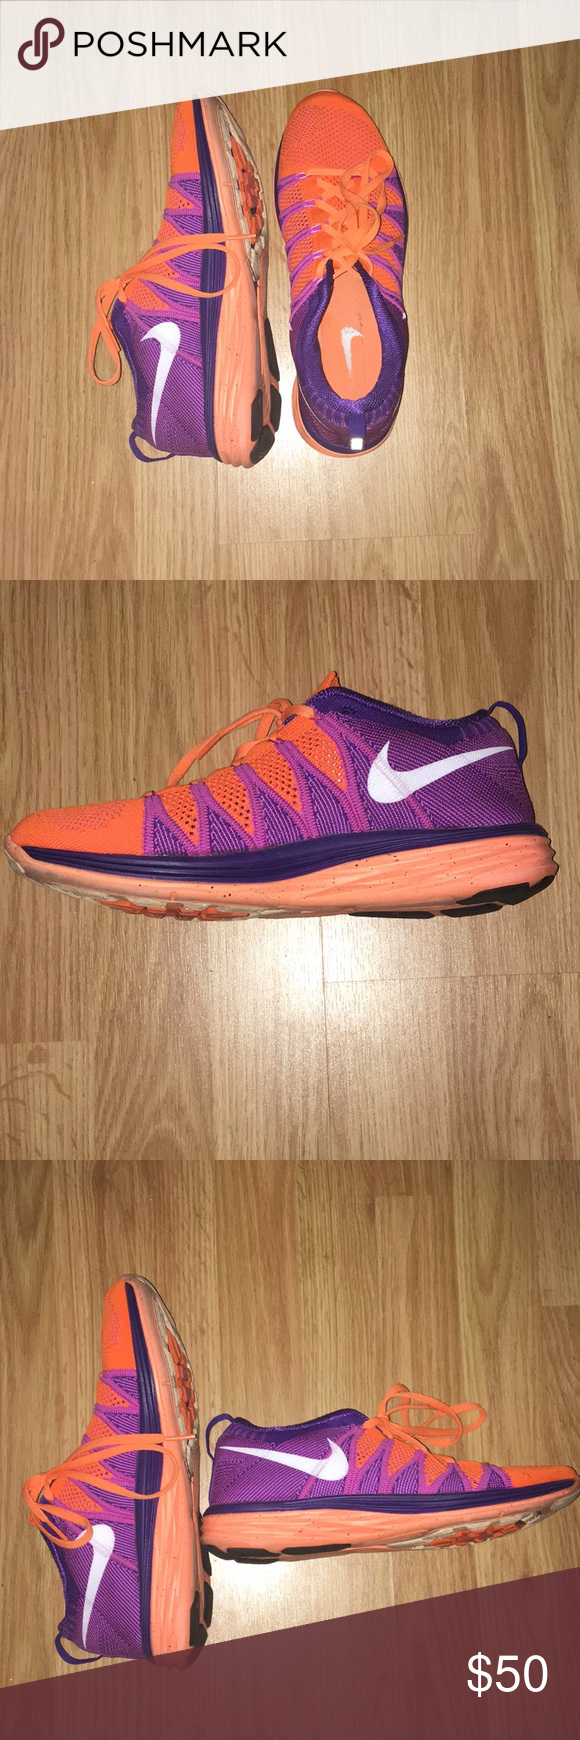 watch 99f11 c0b3a Nike Running Shoes Nike Flyknit Lunar2 Women s Running Shoes in Atomic  Orange Bright Magenta Nike Shoes Athletic Shoes